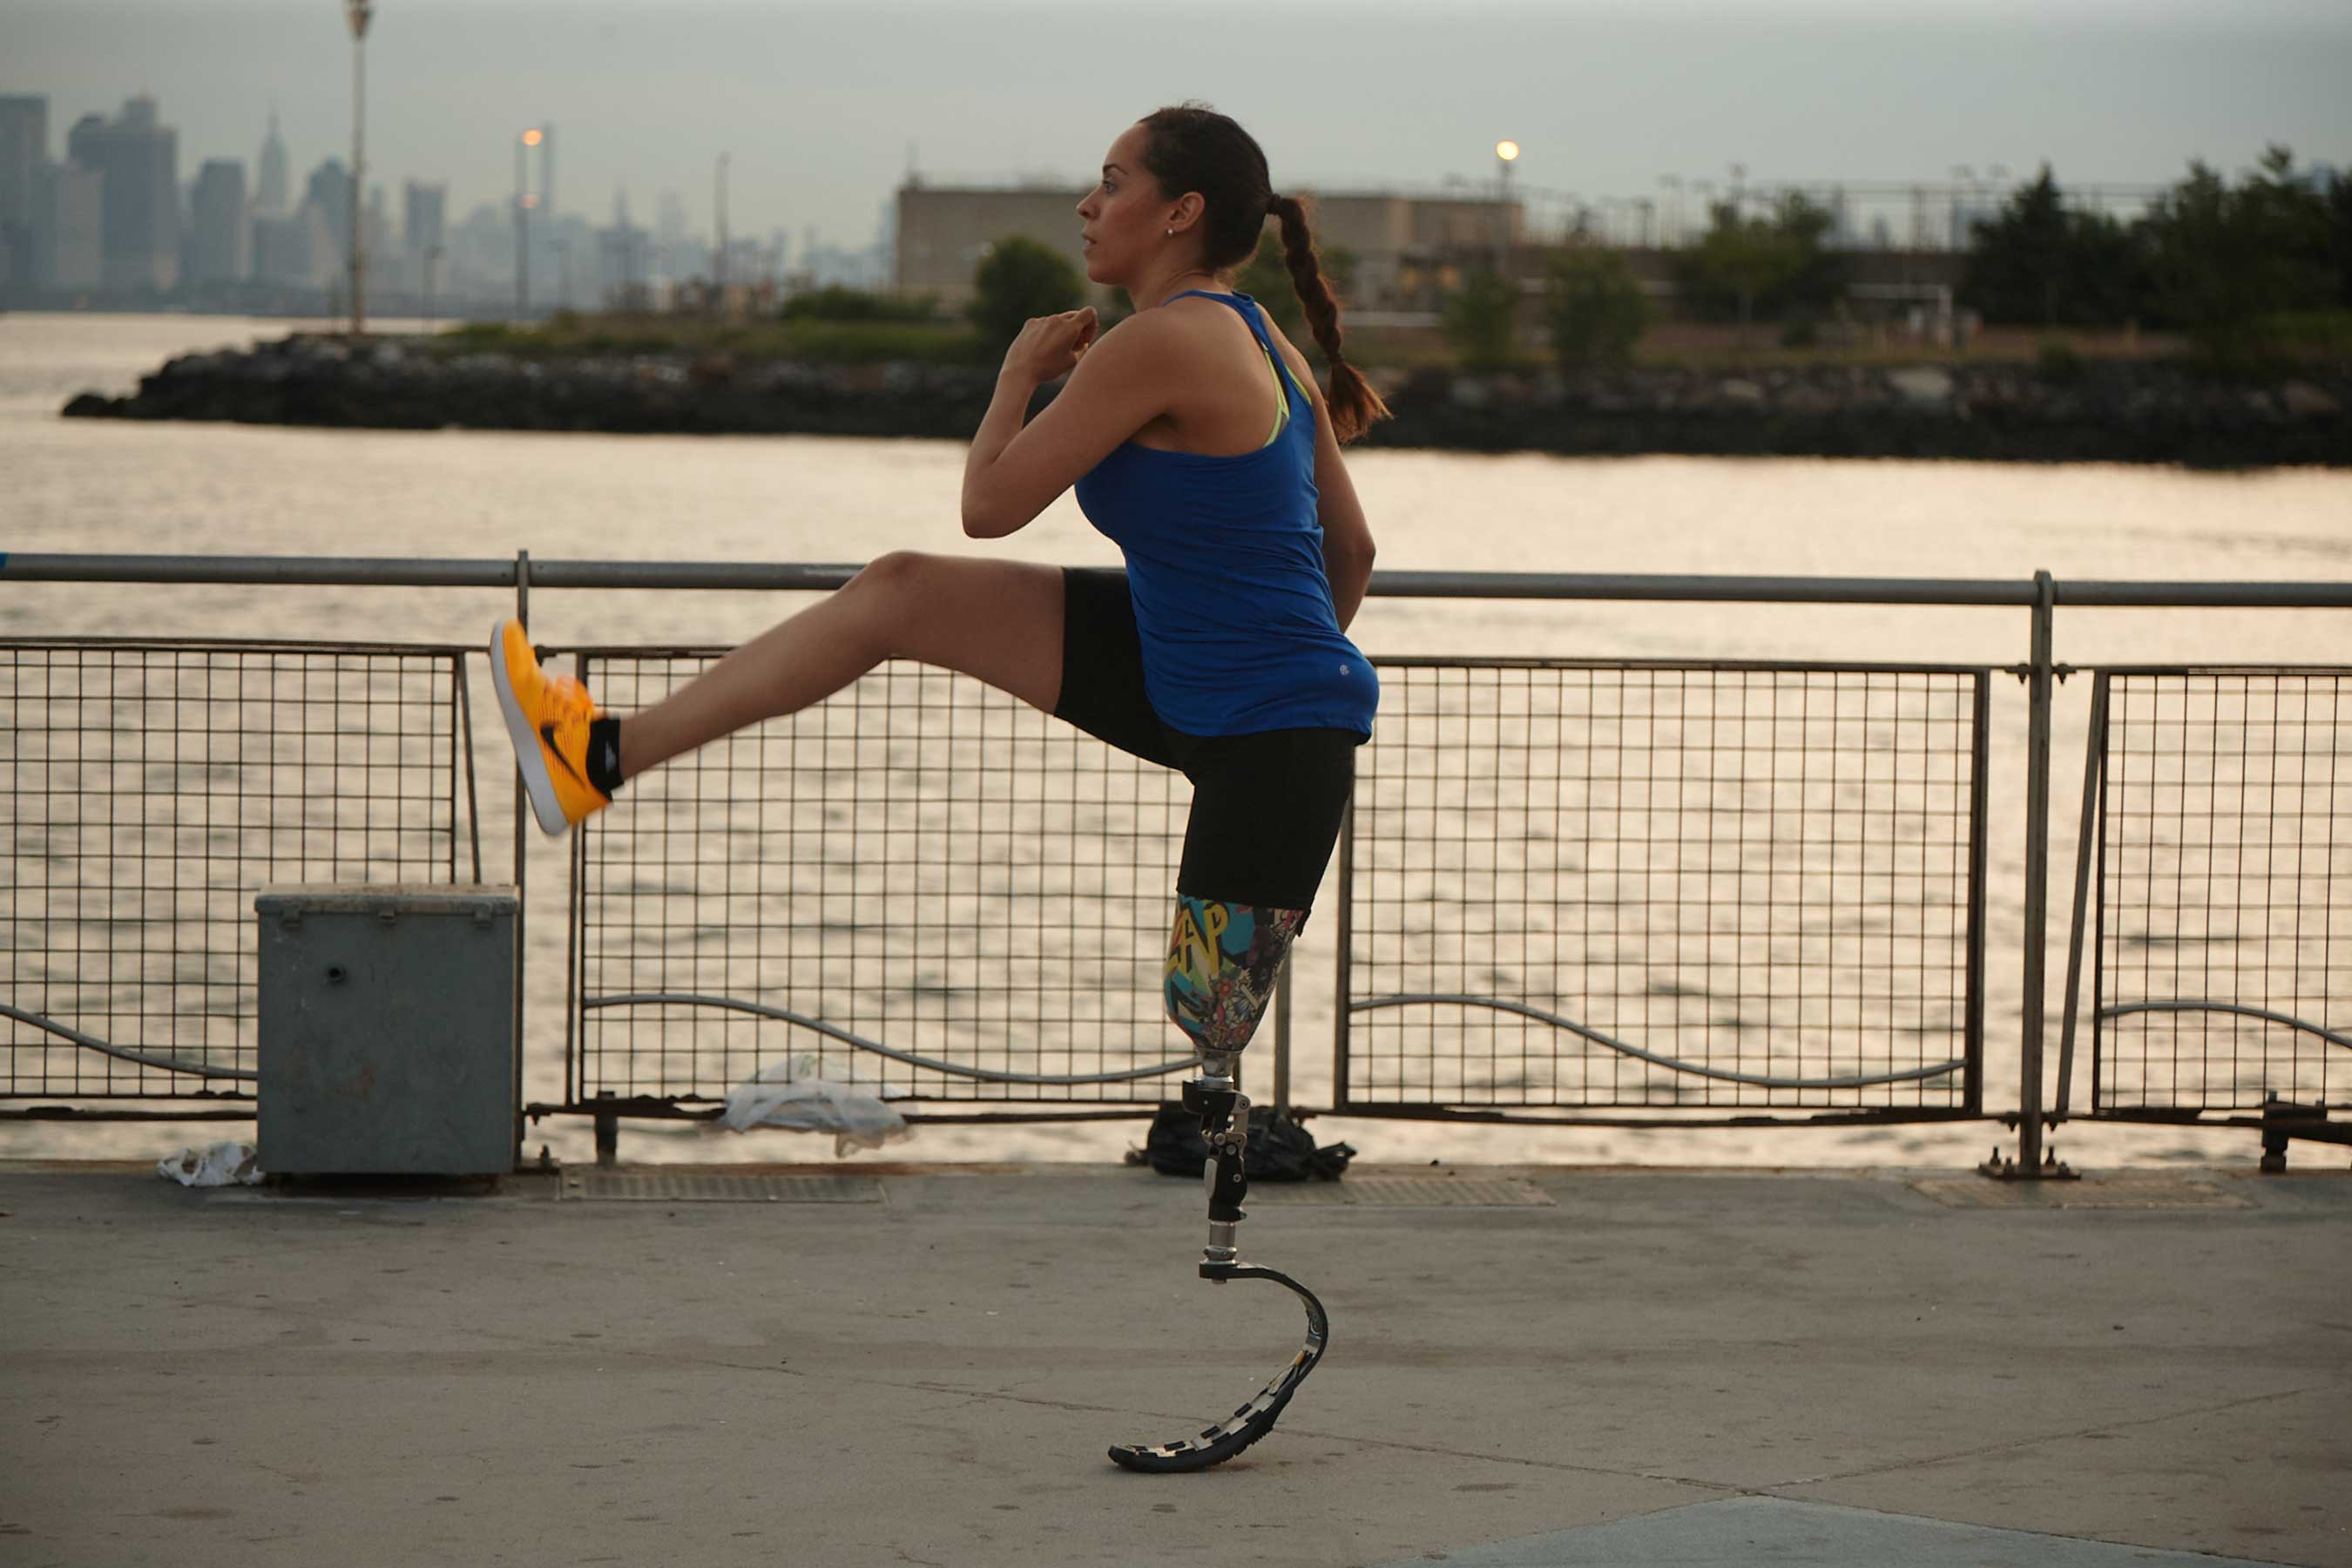 As a teacher, athlete, and mother of two girls, Diana was used to living up to her namesake, Wonder Woman. So when Diana lost her leg in an accident, she called on her inner passion and strength - and stepped out again into the world with unwavering confidence.